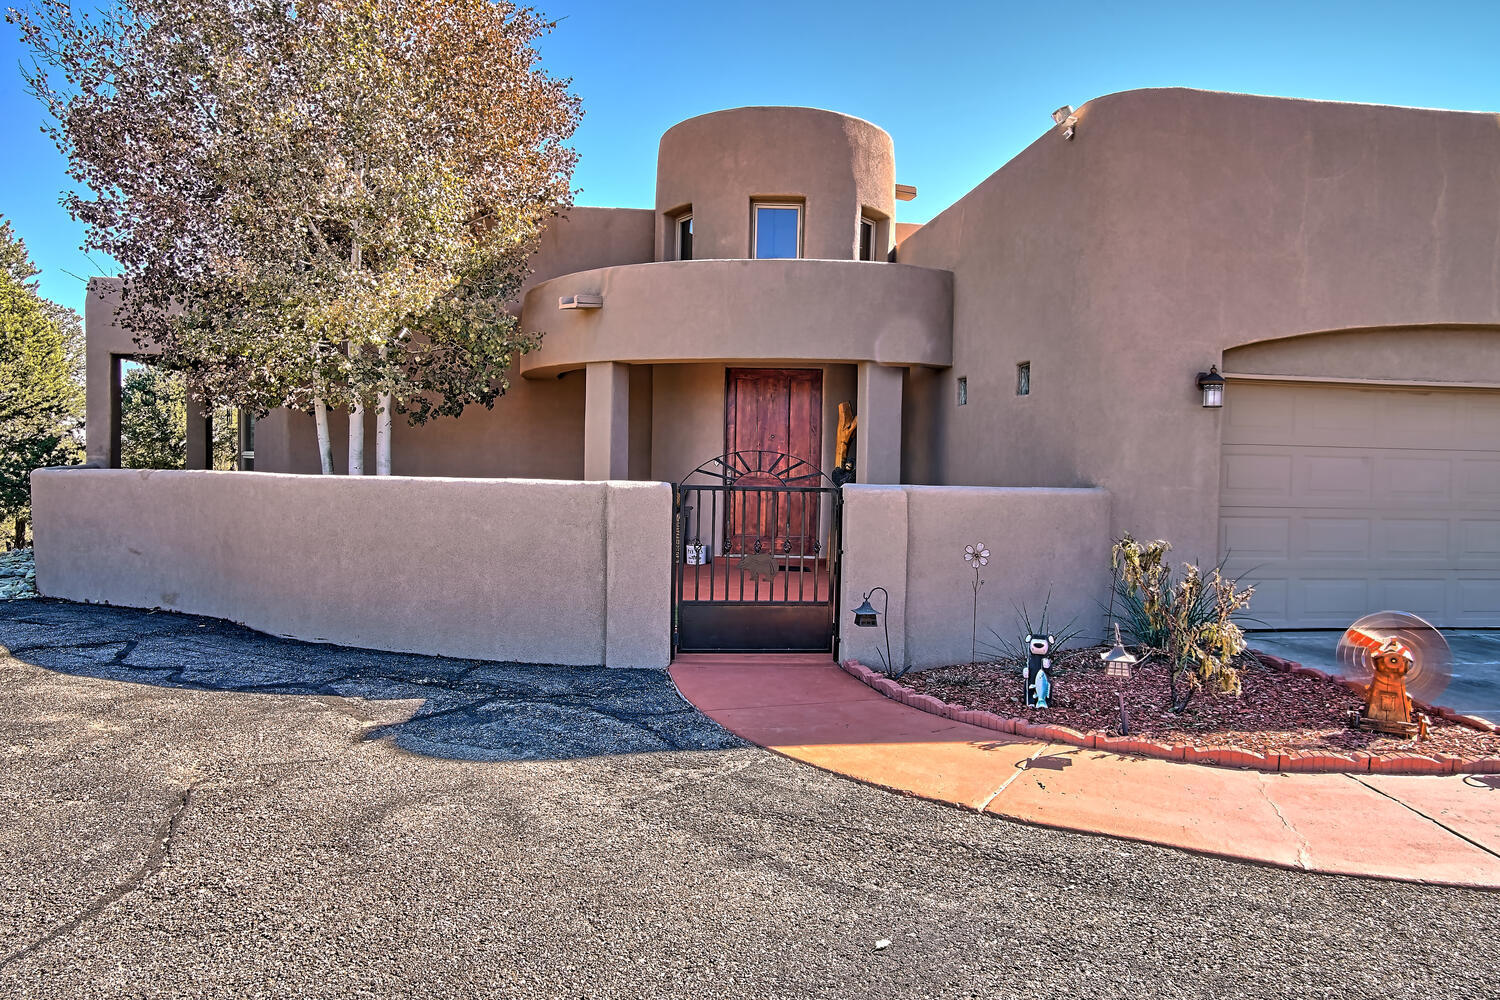 76 WOODLANDS Drive Property Photo - Tijeras, NM real estate listing